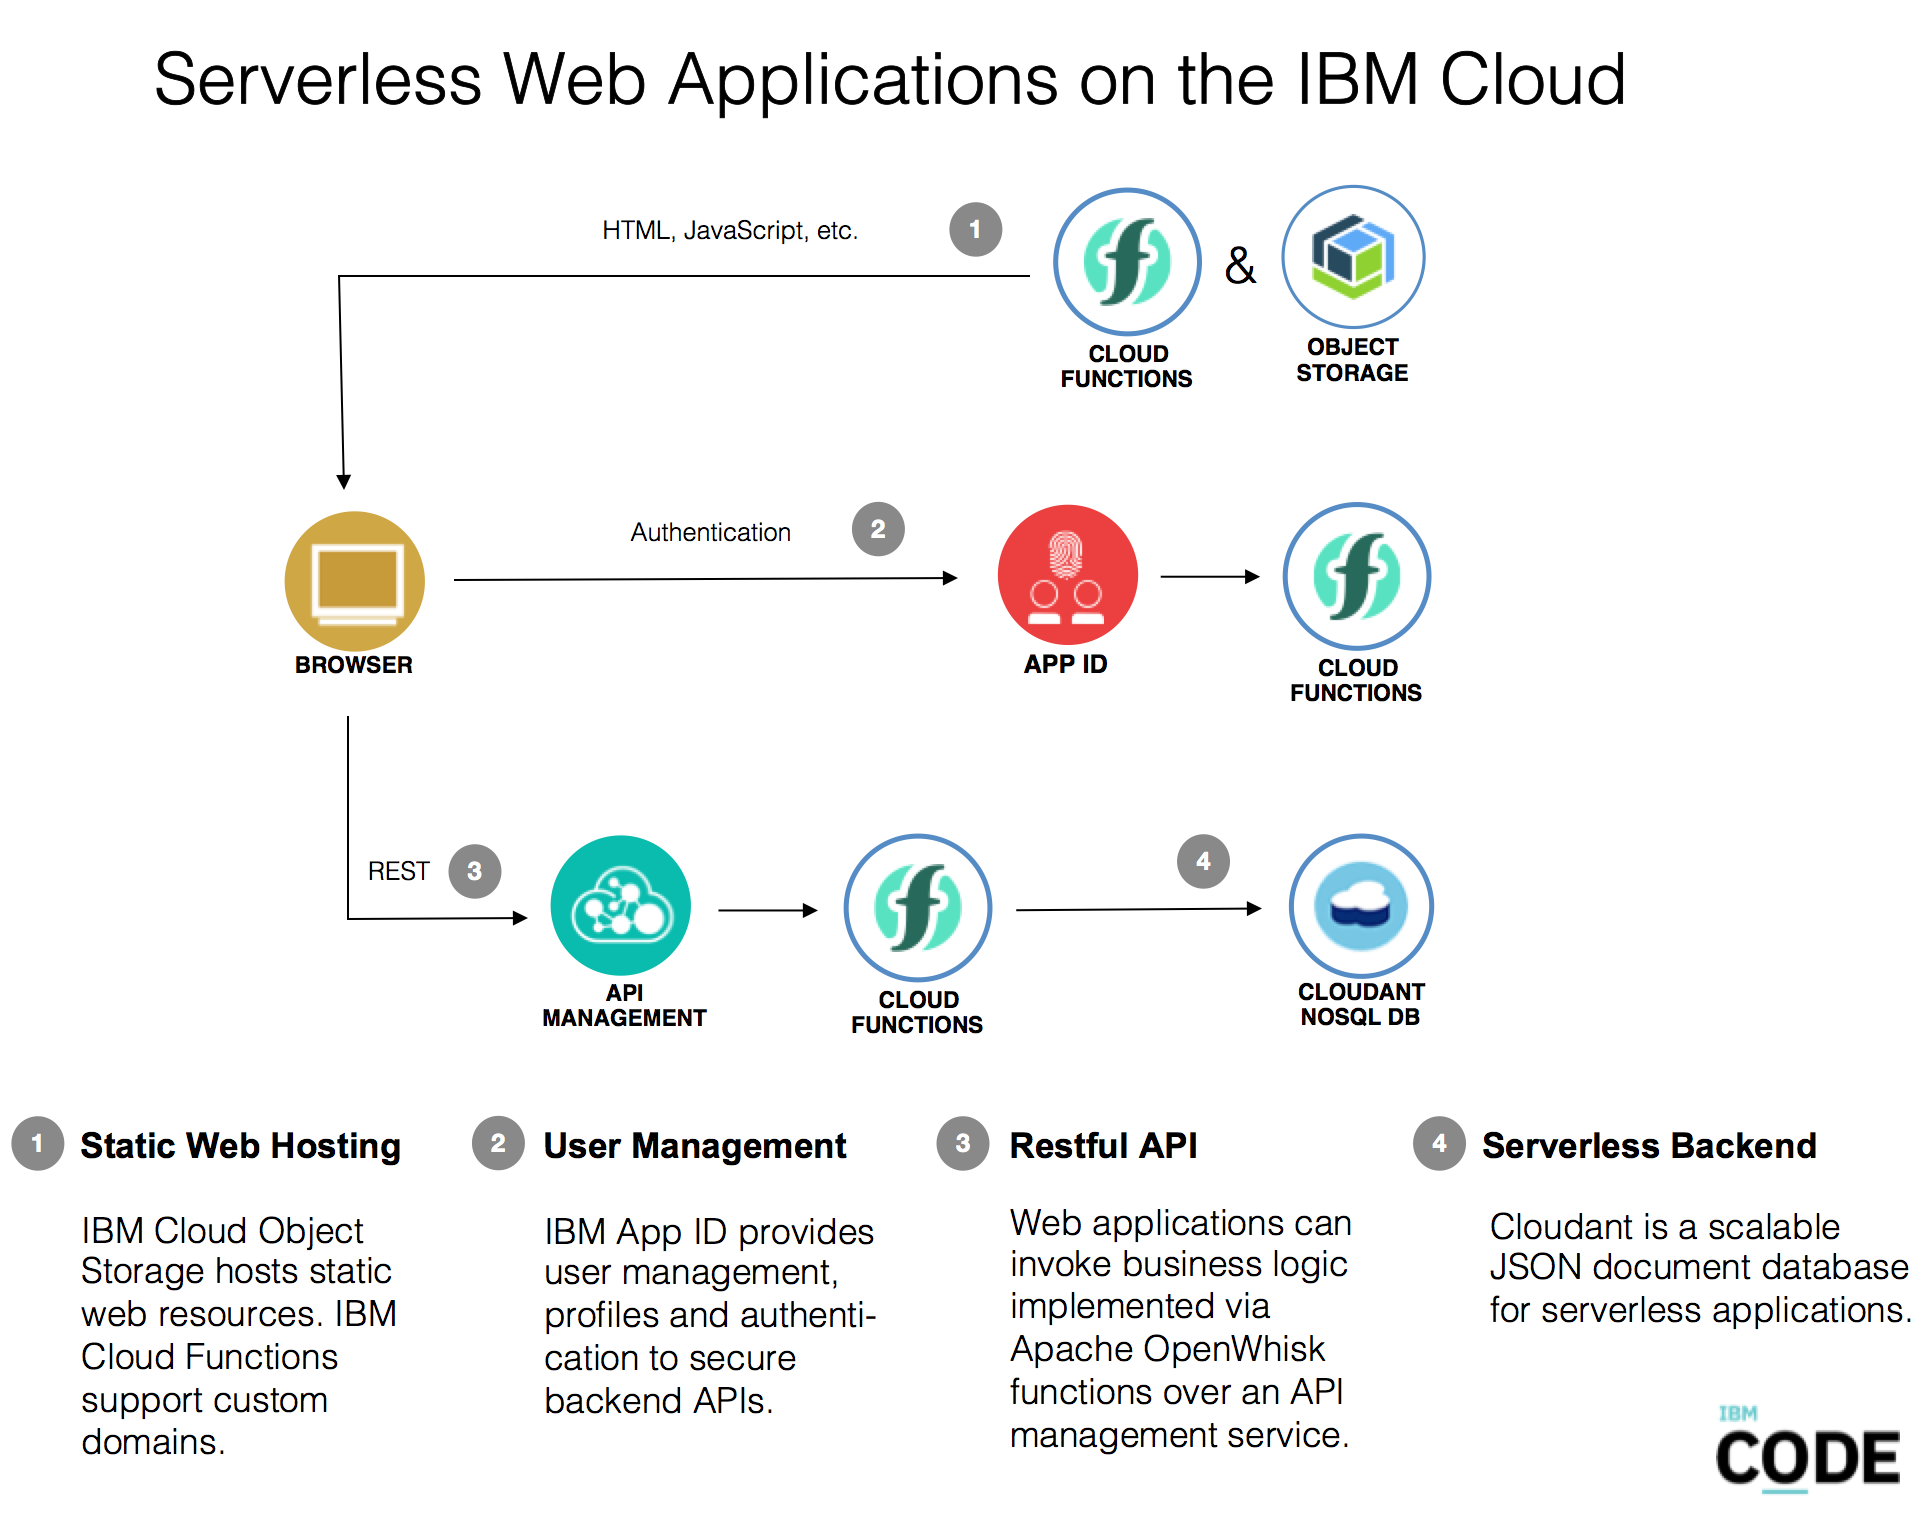 Developing Serverless Web Applications on the IBM Cloud